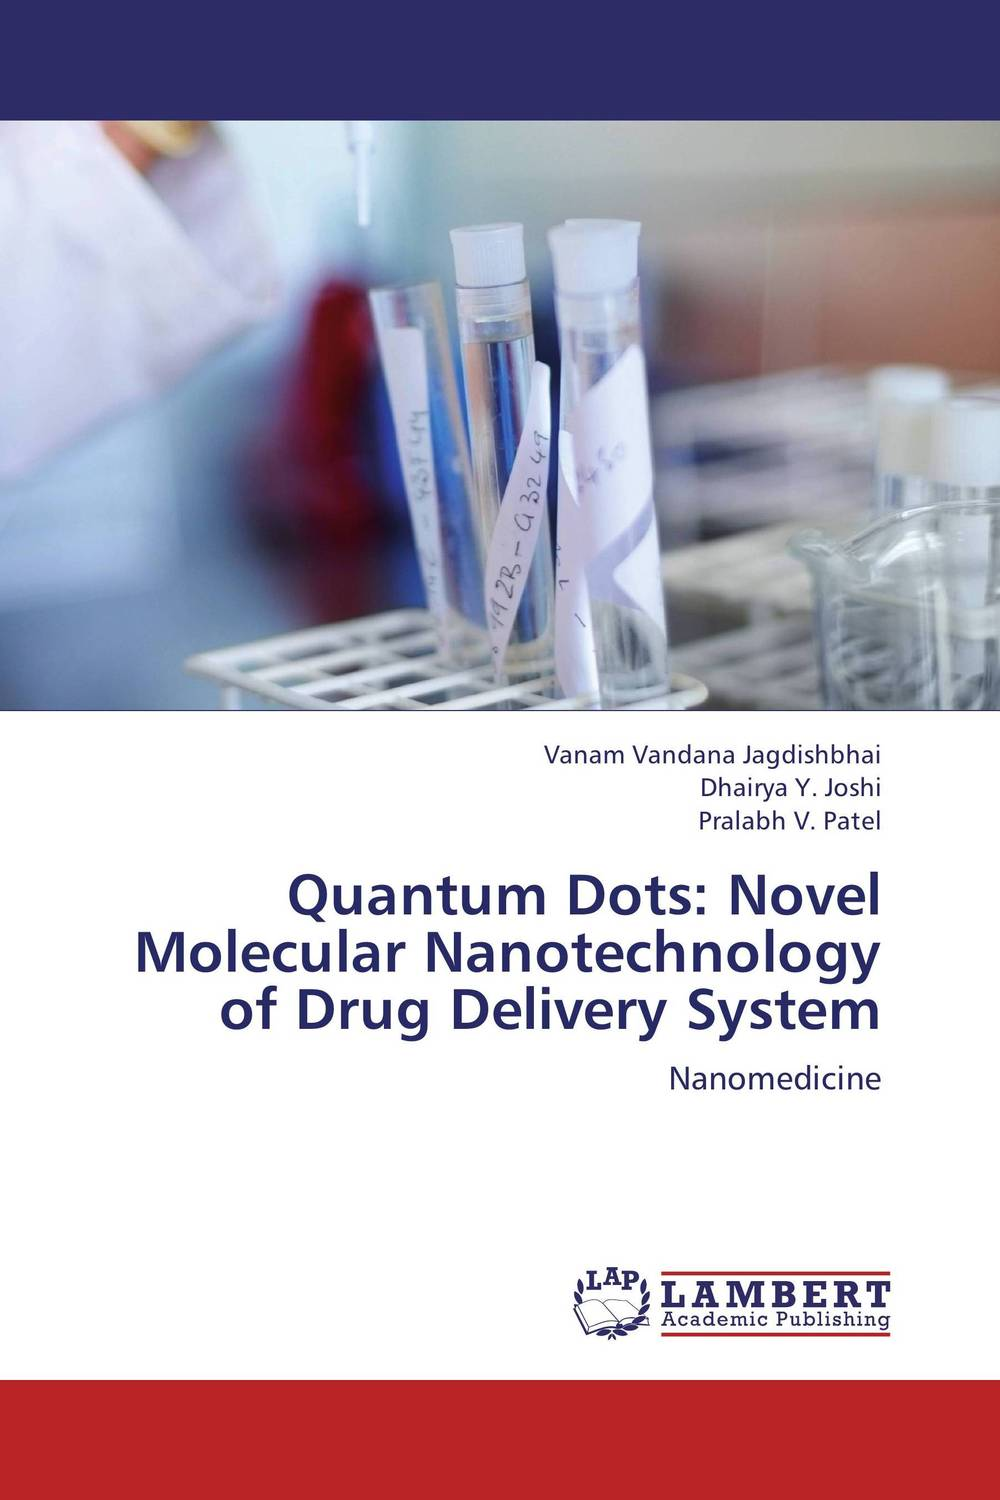 Quantum Dots: Novel Molecular Nanotechnology of Drug Delivery System abhishek kumar sah sunil k jain and manmohan singh jangdey a recent approaches in topical drug delivery system